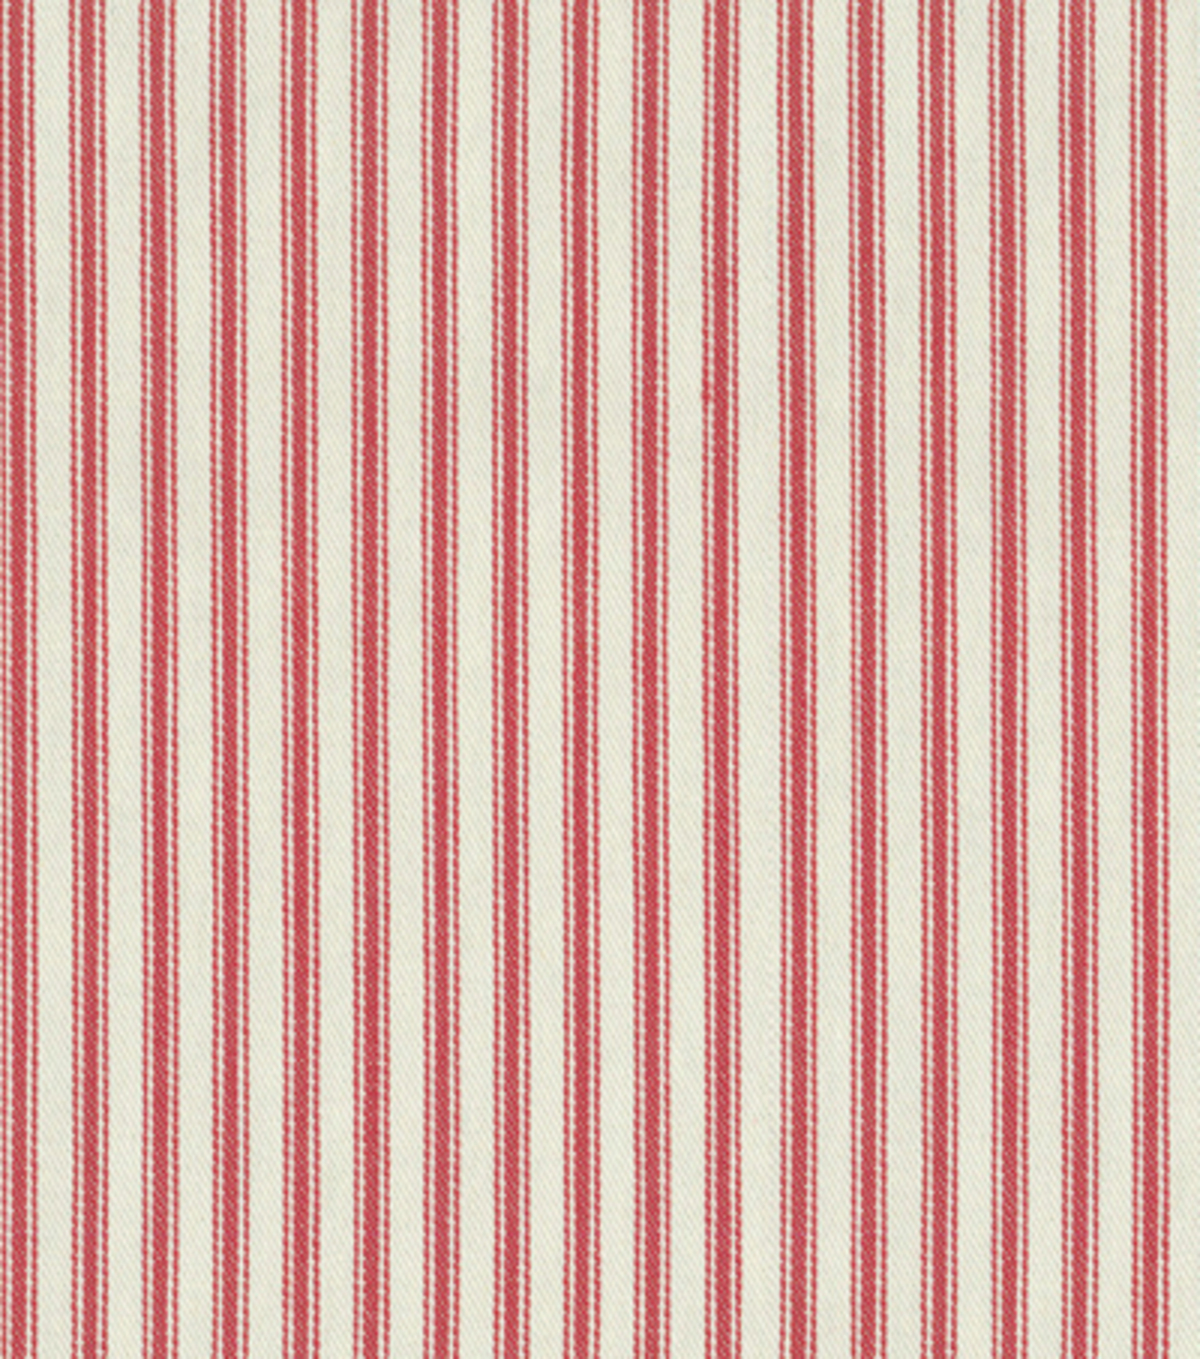 Home Decor 8\u0022x8\u0022 Fabric Swatch-Upholstery-Waverly Classic Ticking/Americana